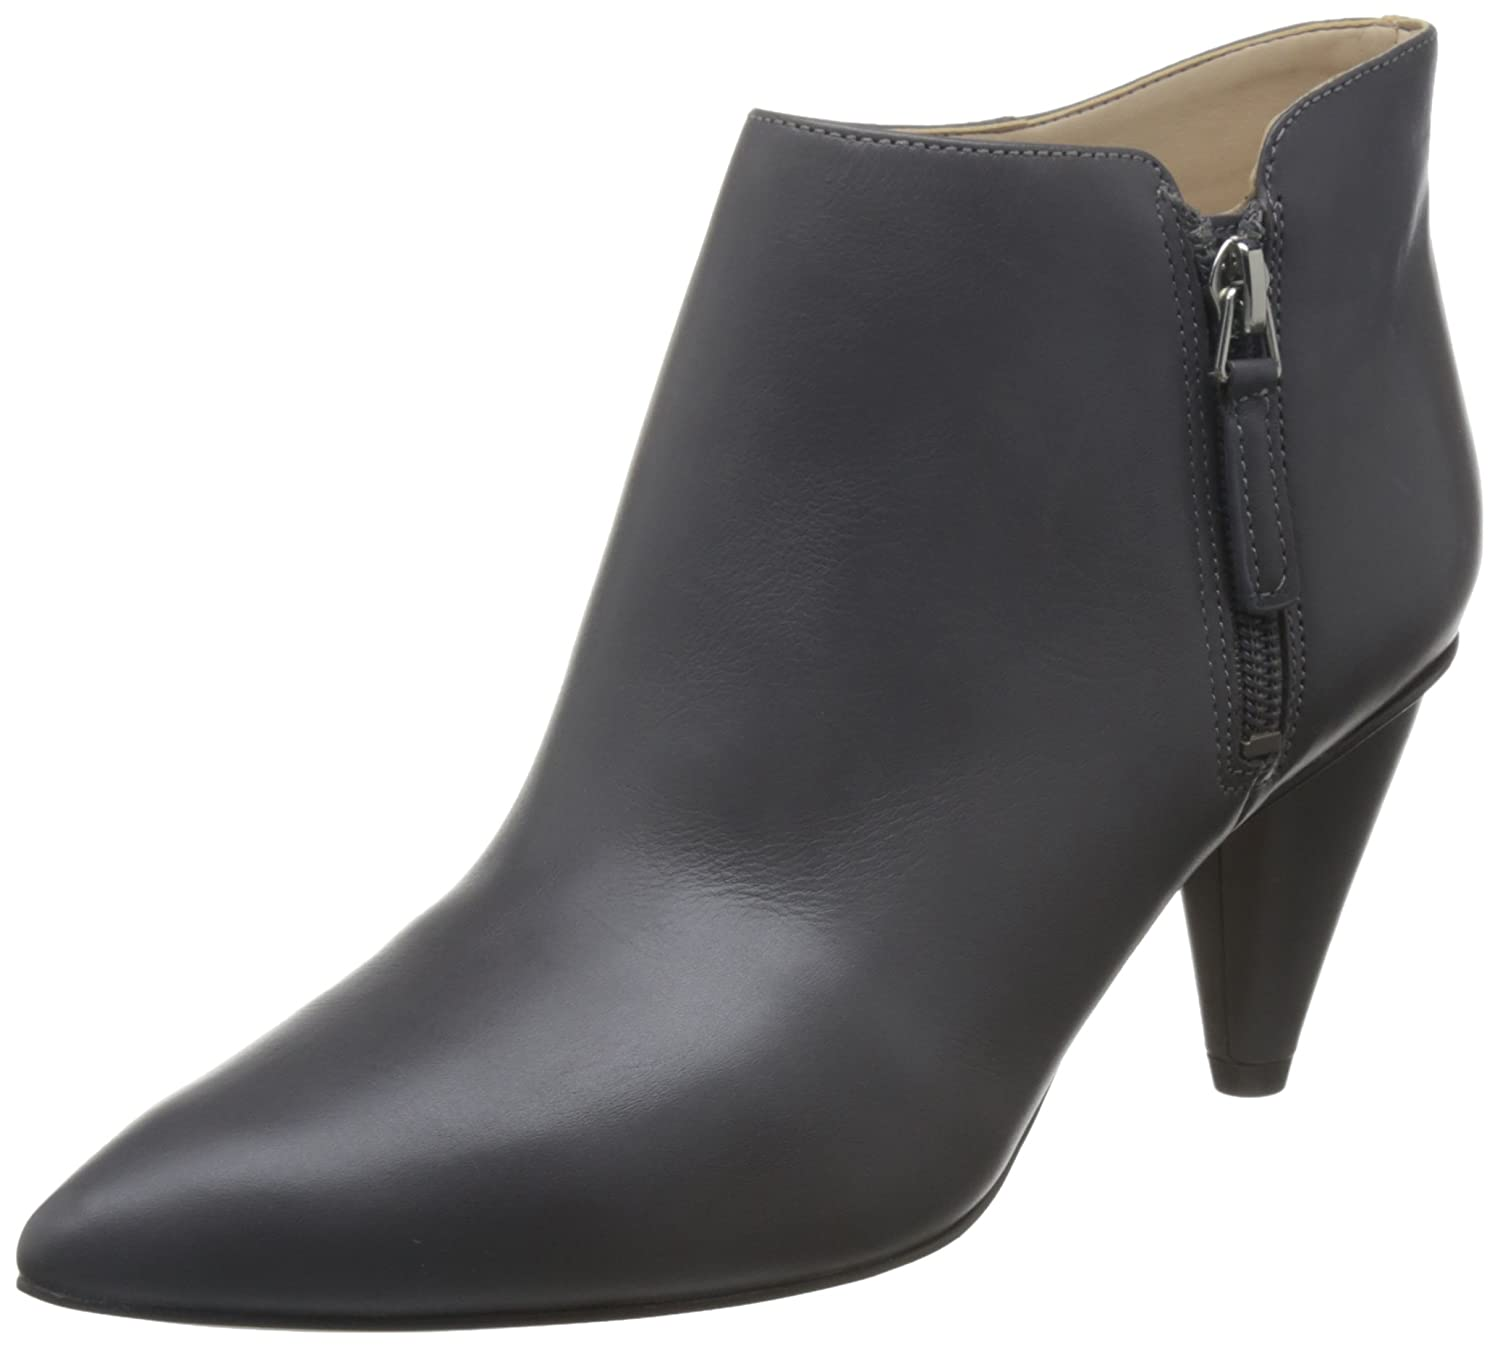 Nine West Womens Yames Leather Pointed Toe Ankle Fashion Boots